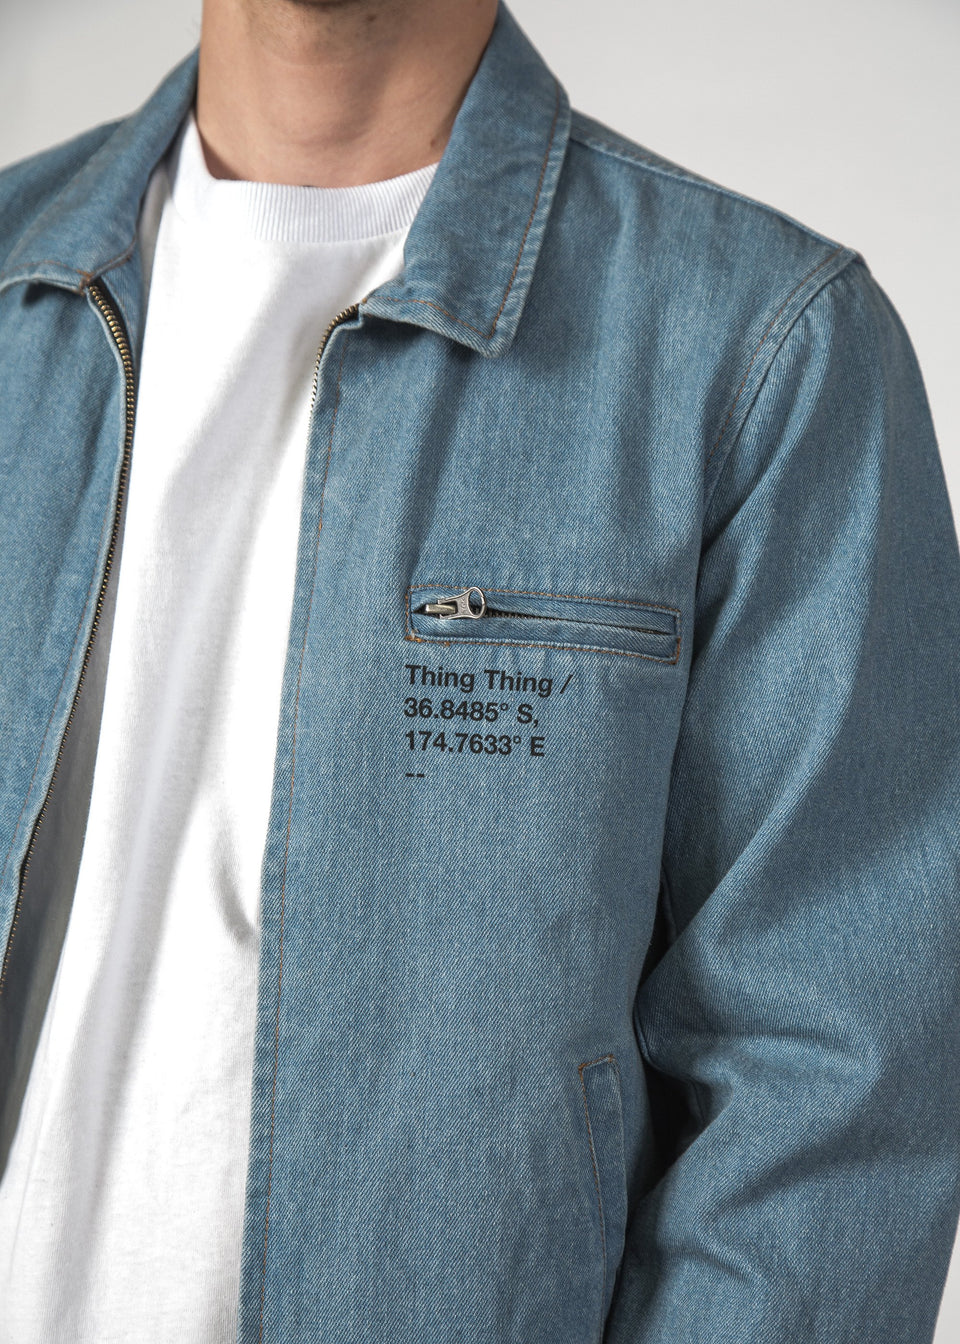 thing thing - concord blue denim jacket